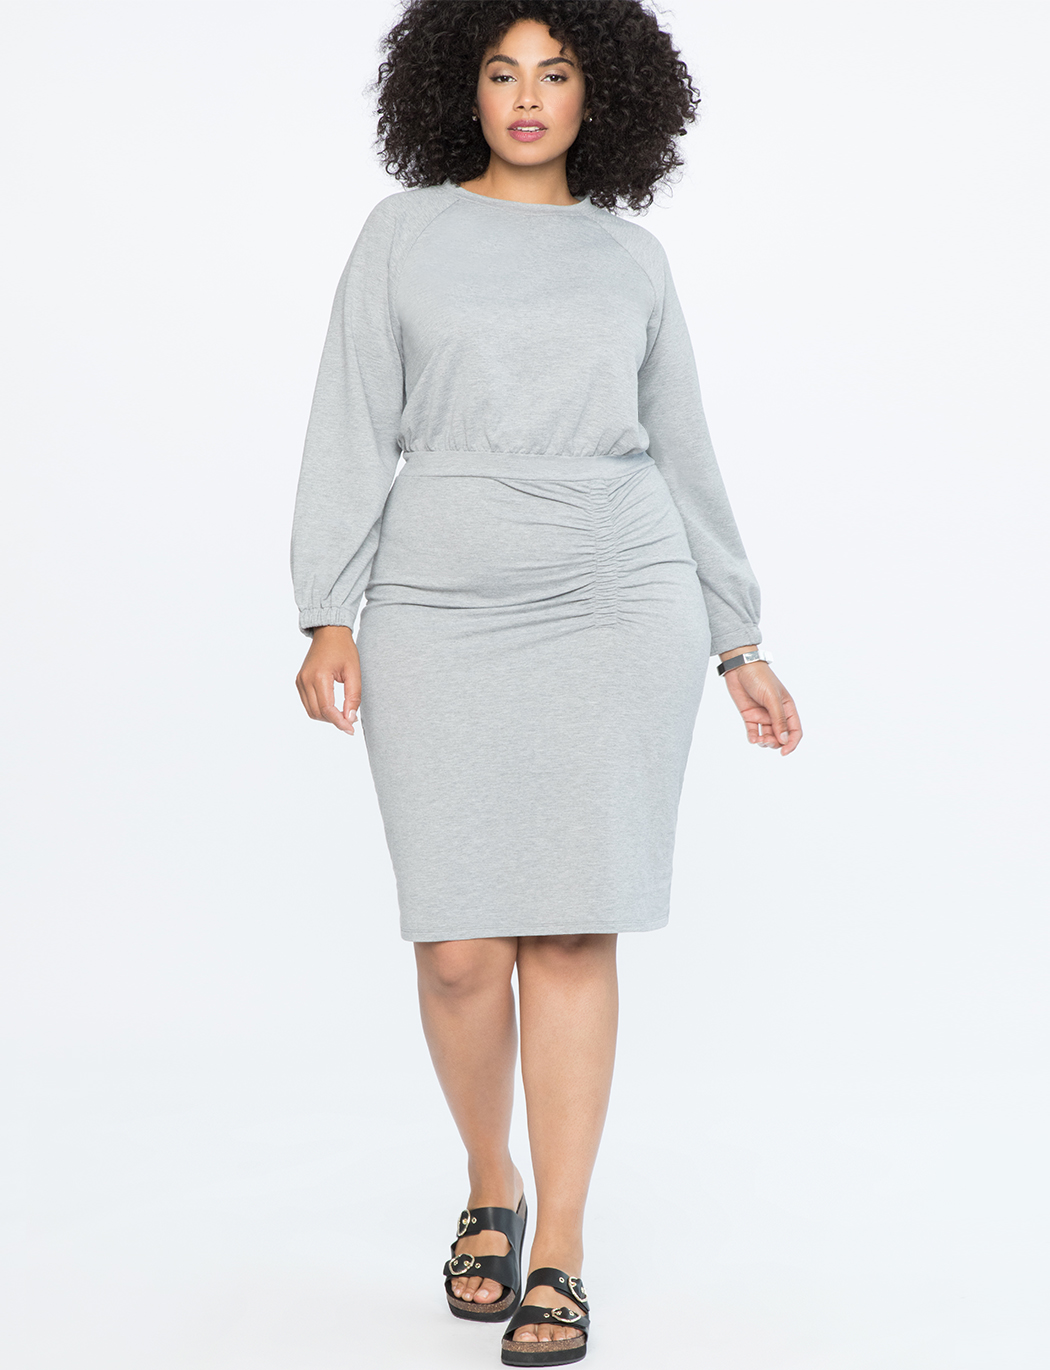 Sweatshirt Dress | Women\'s Plus Size Dresses | ELOQUII